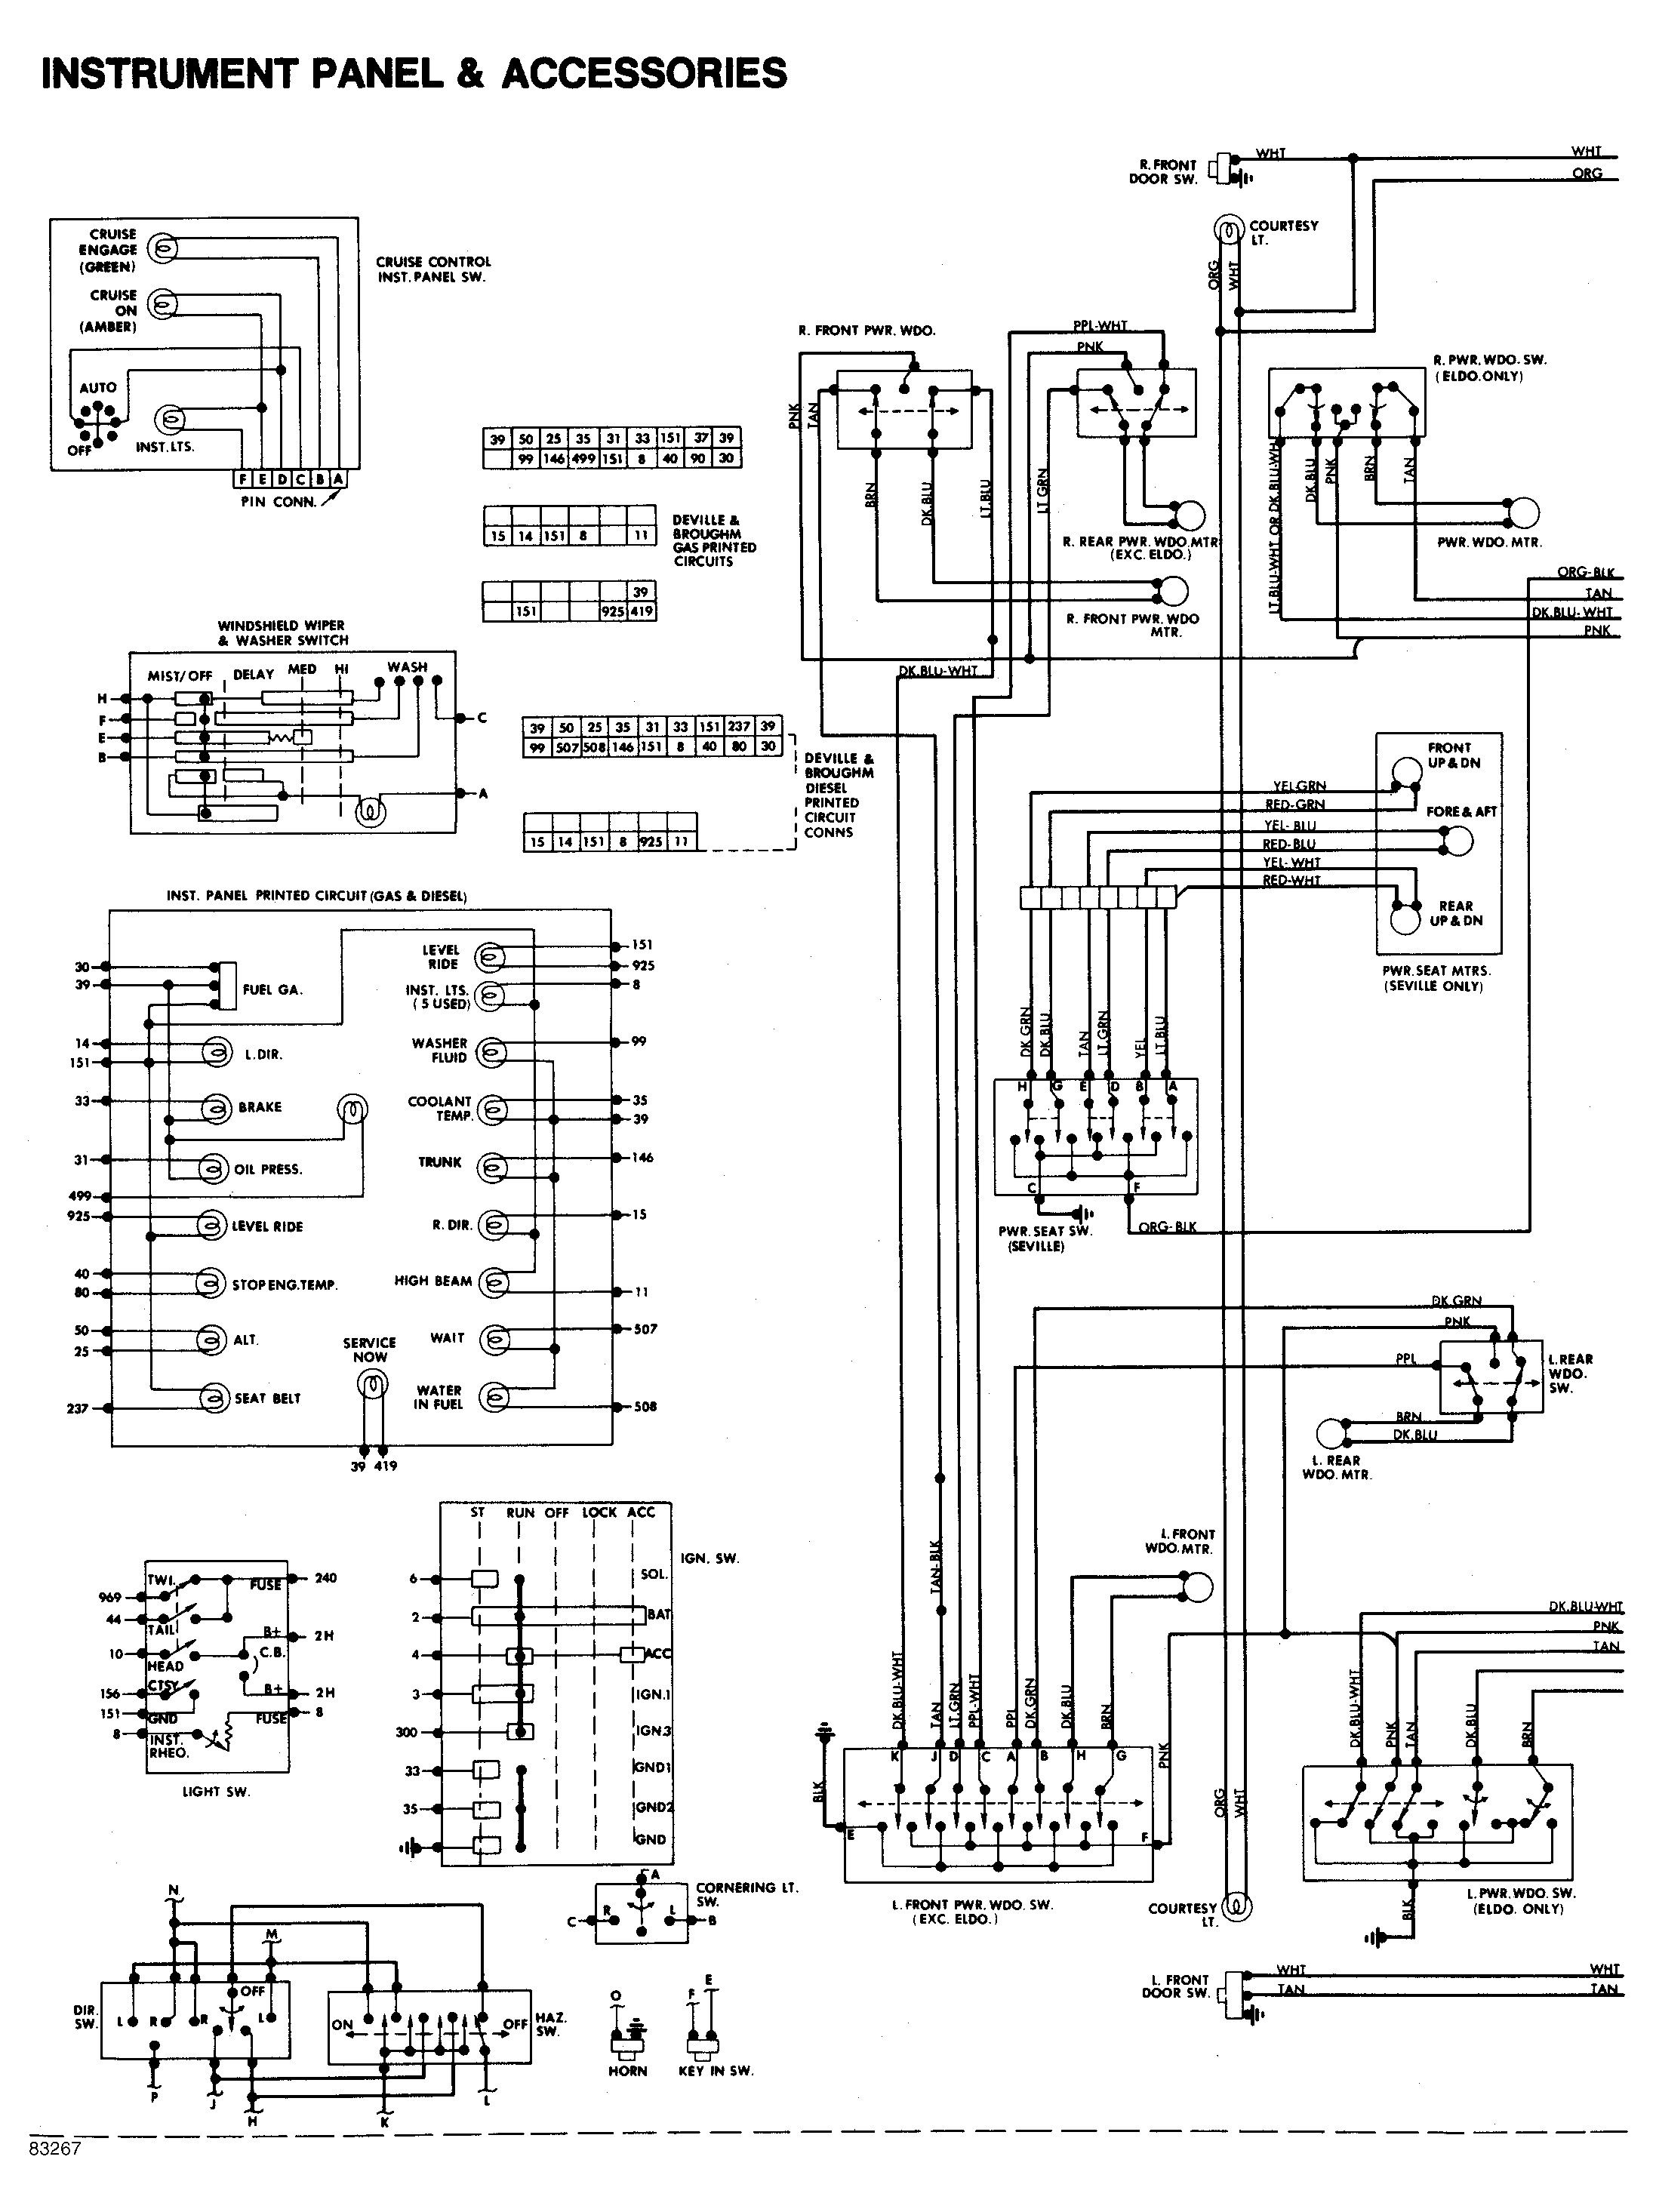 daewoo nexia fuse box wiring diagram rh 42 fomly be